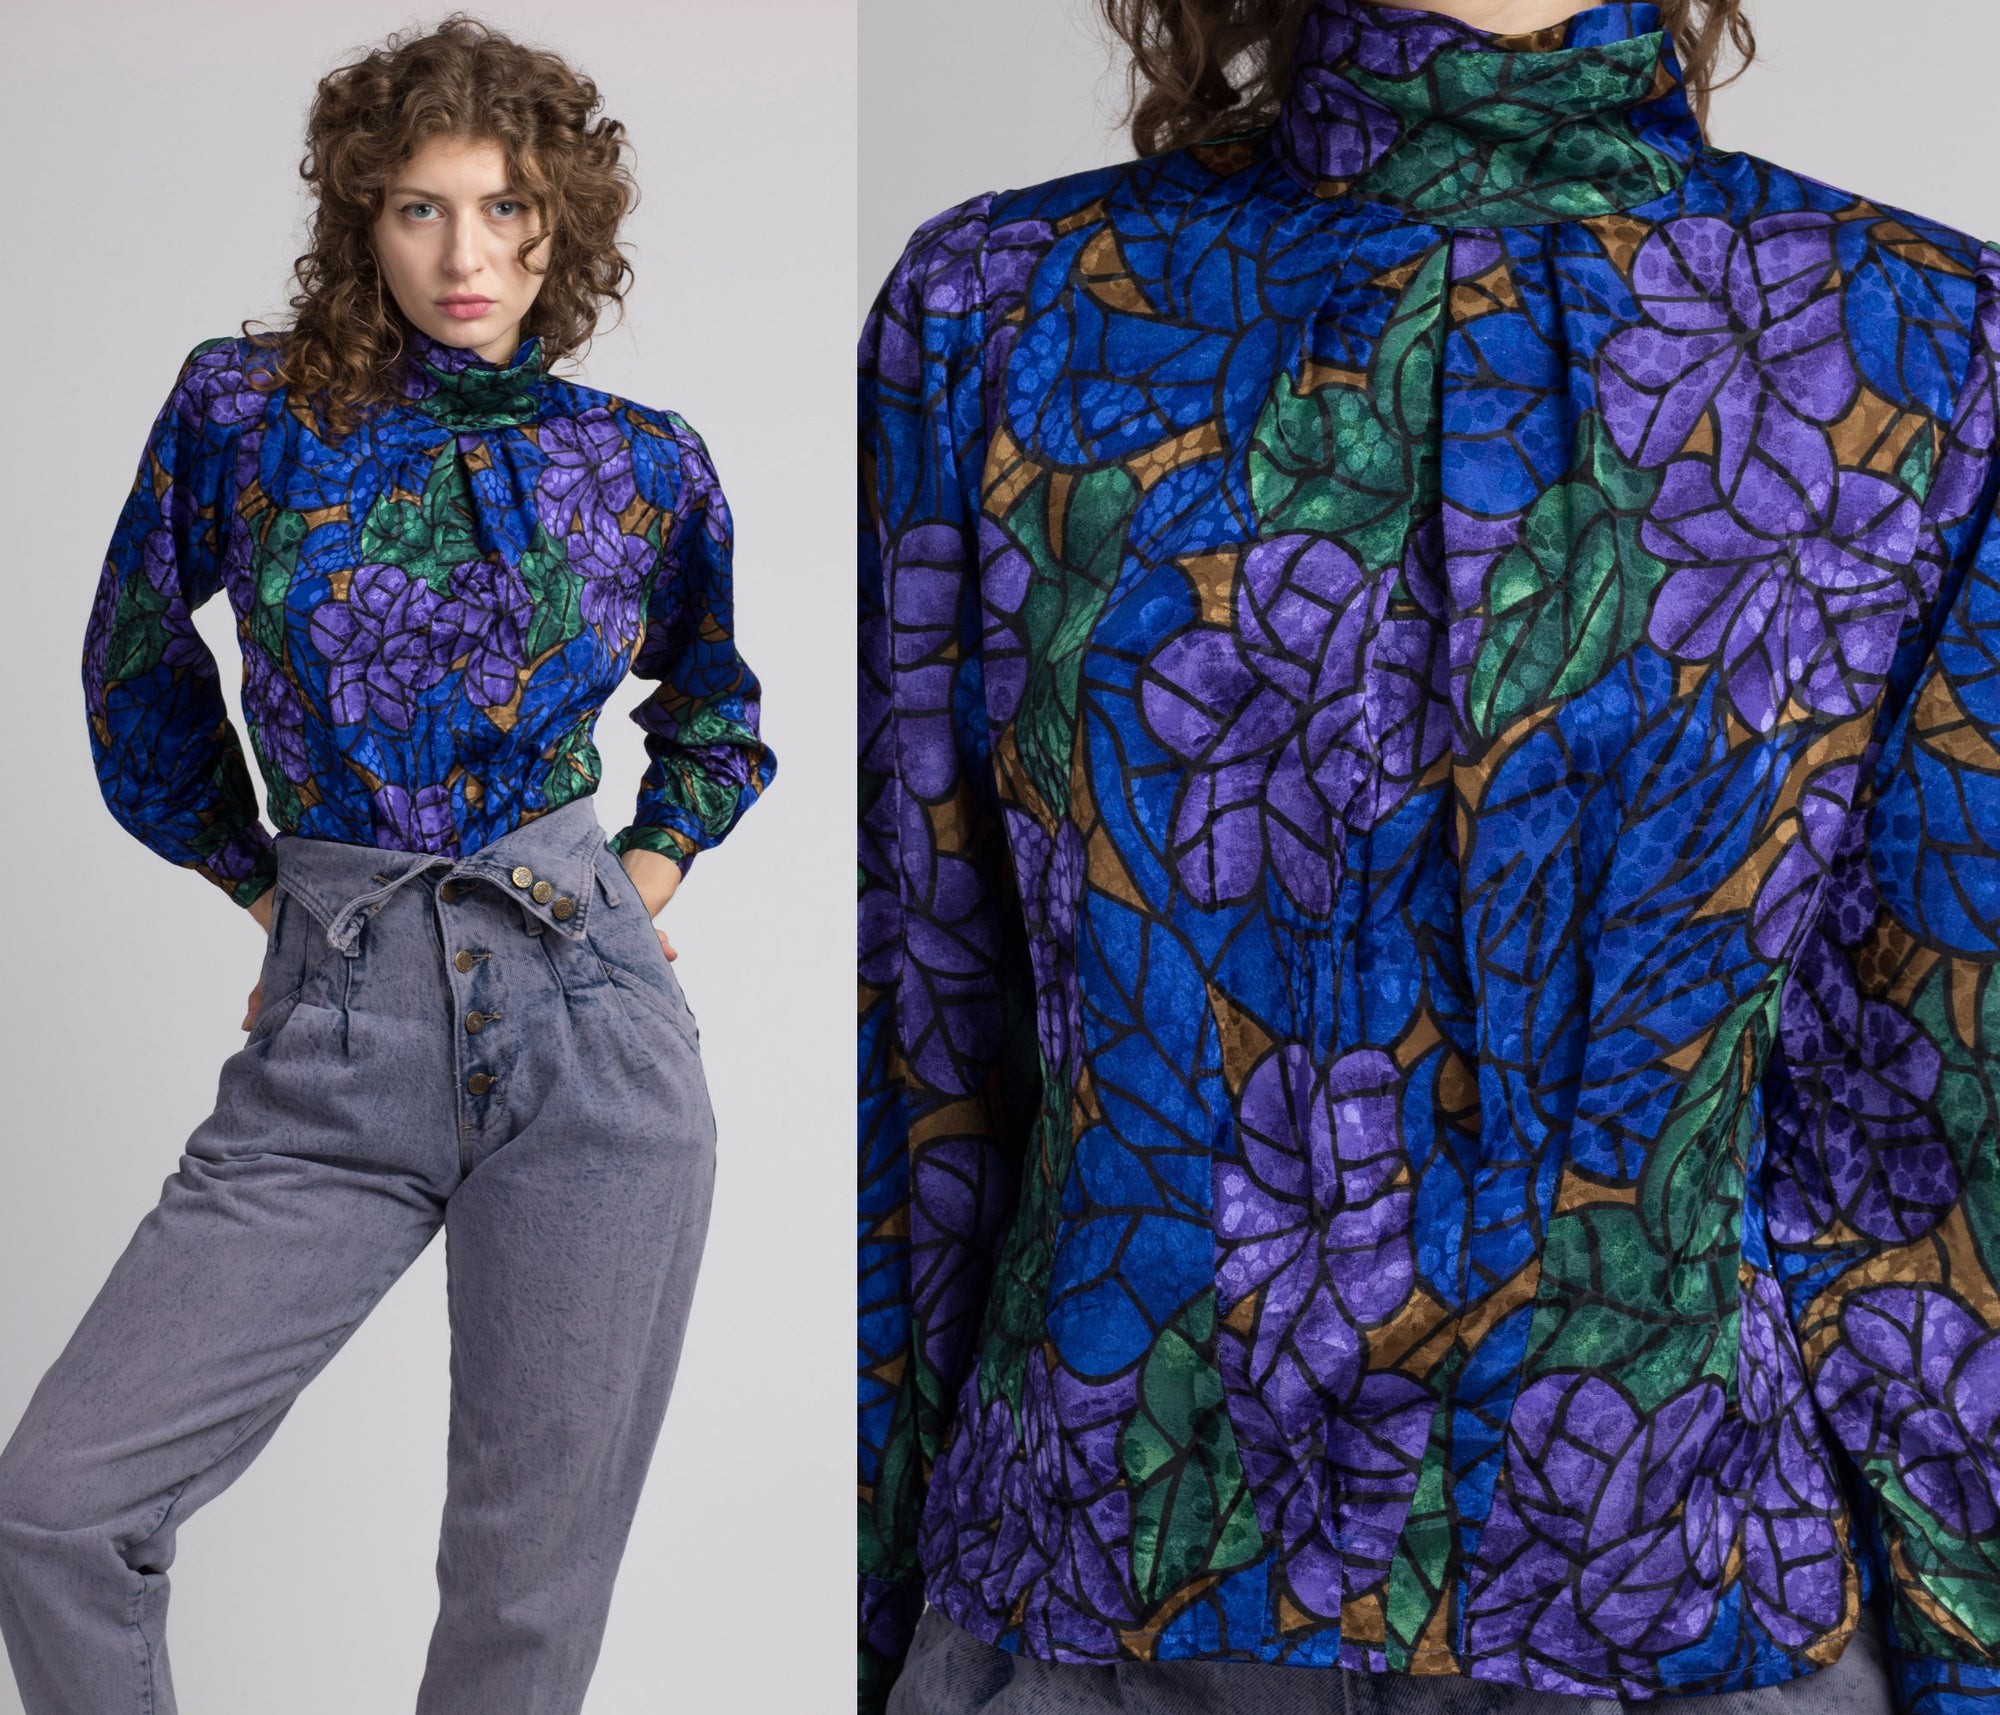 80s Floral Stained Glass High Collar Blouse - Small